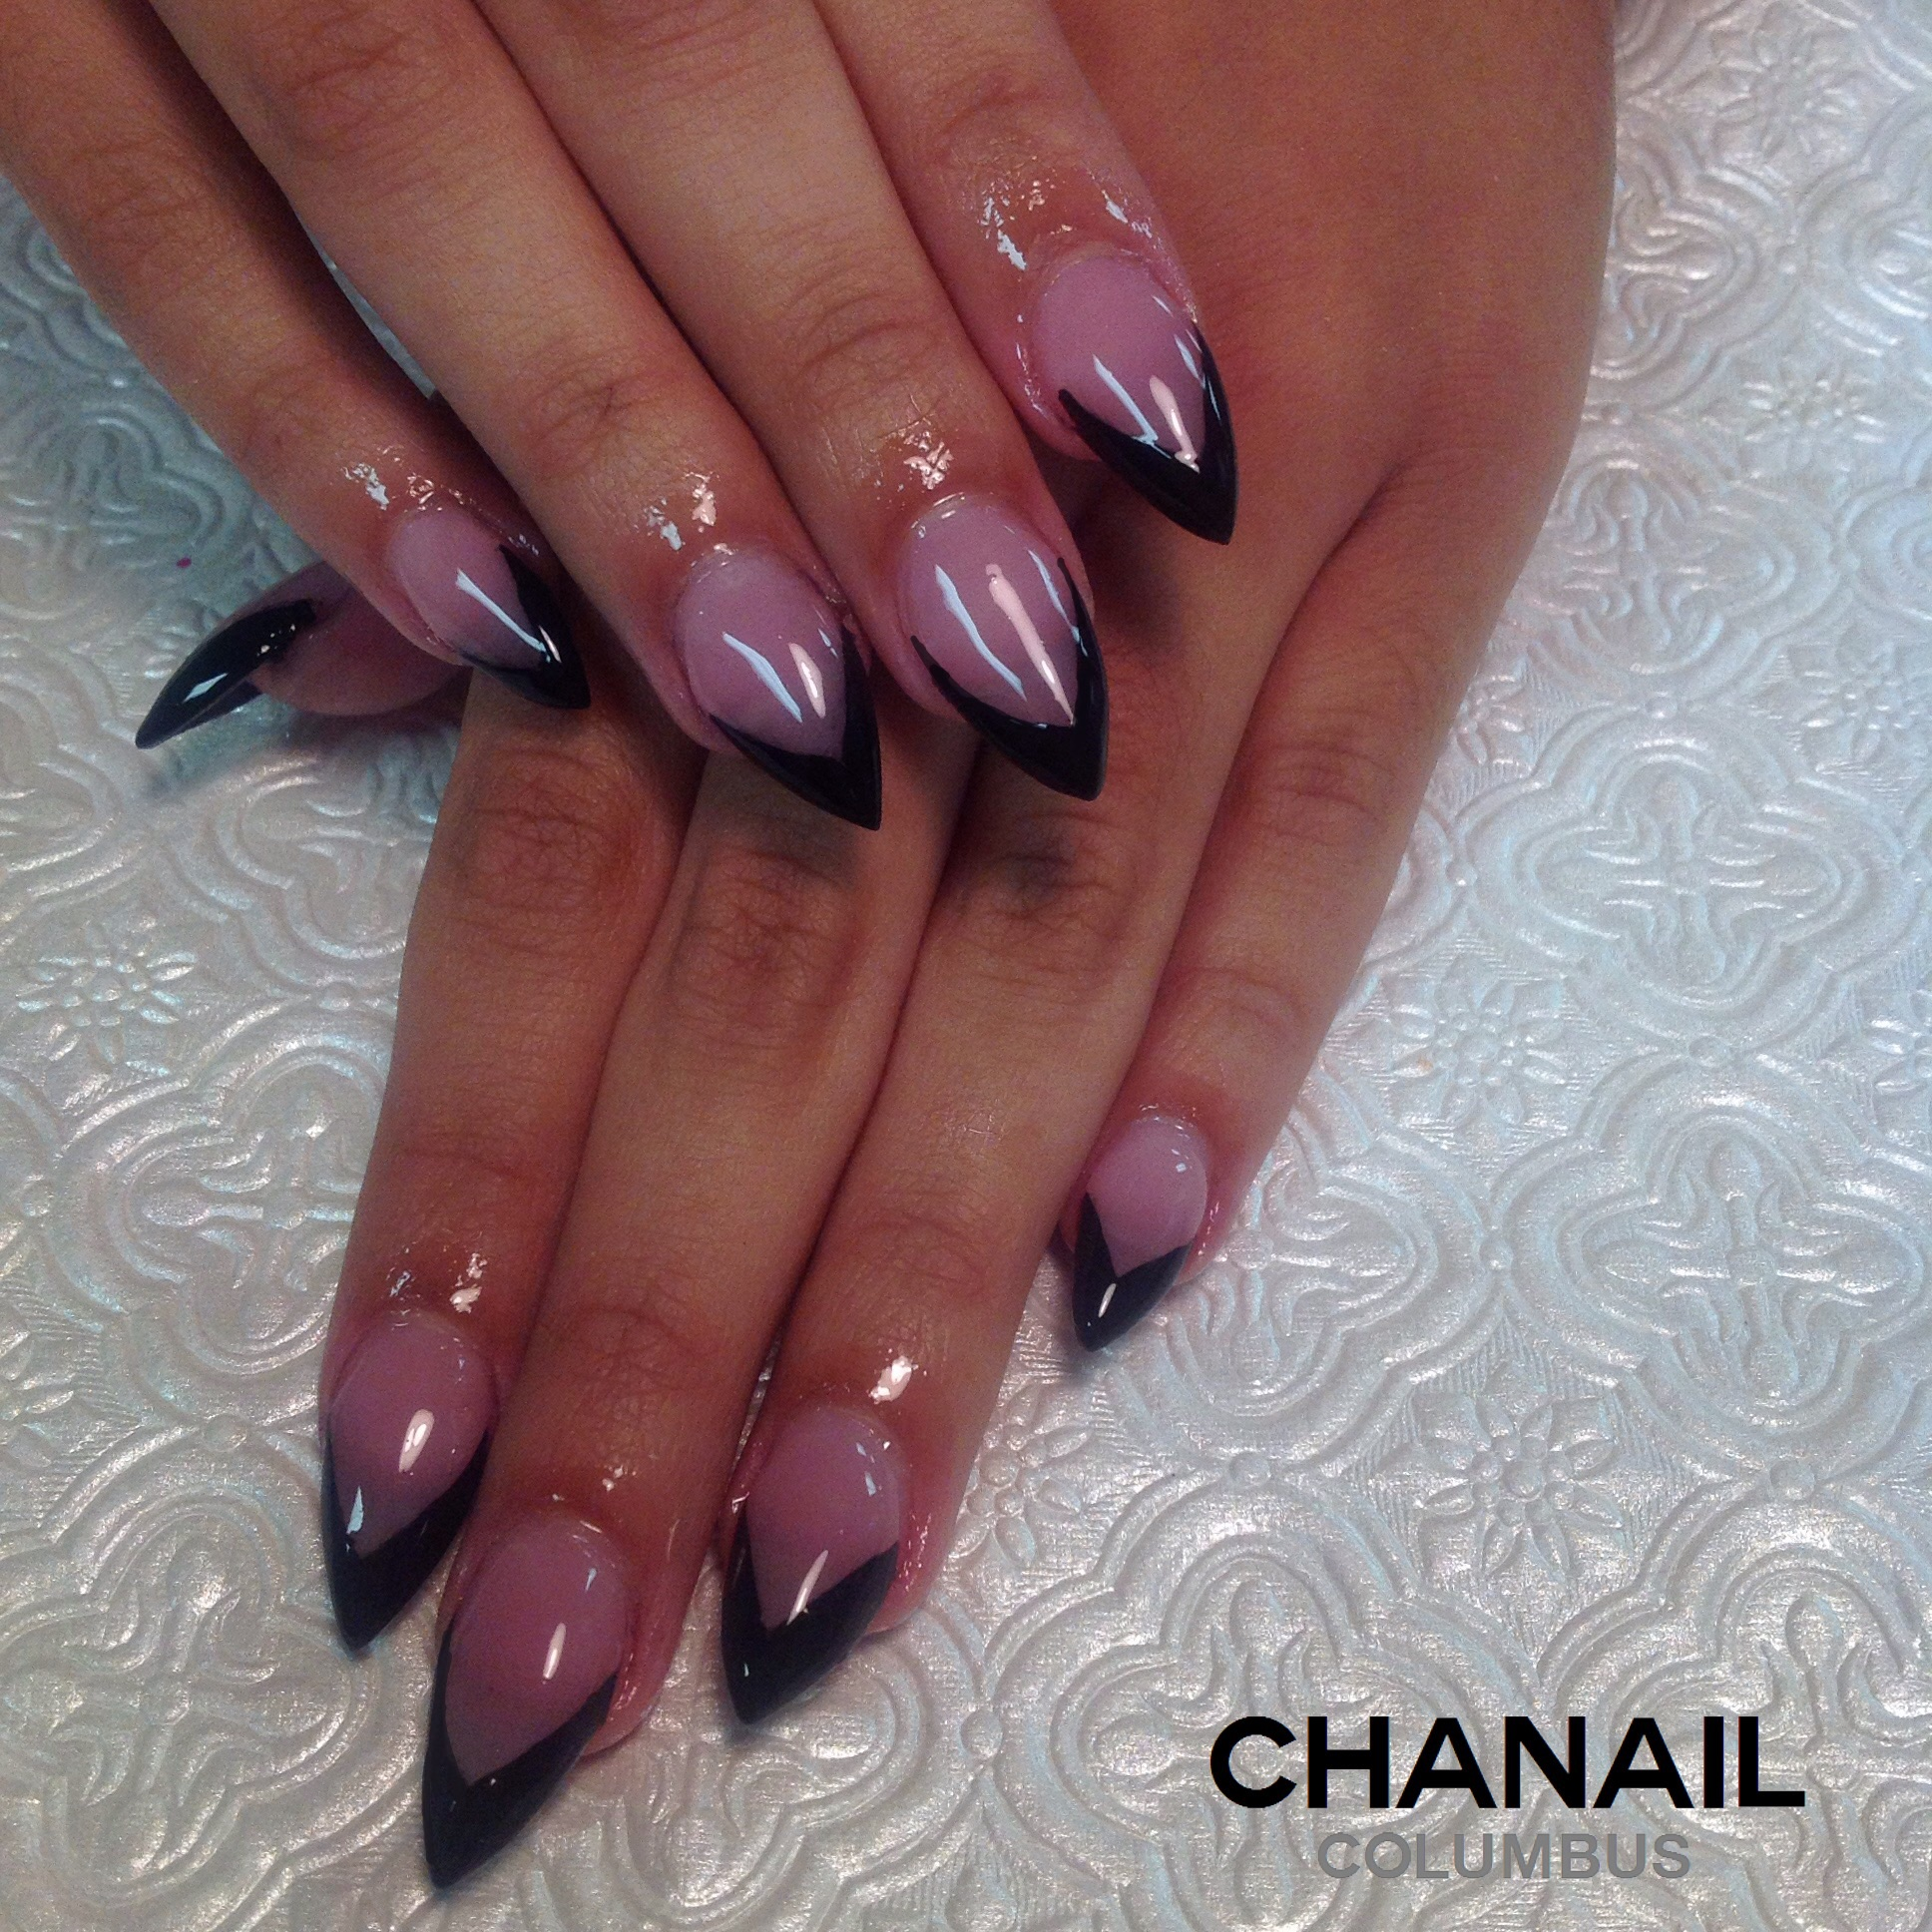 Services - CHANAIL- Columbus Nail SalonCHANAIL- Columbus Nail Salon